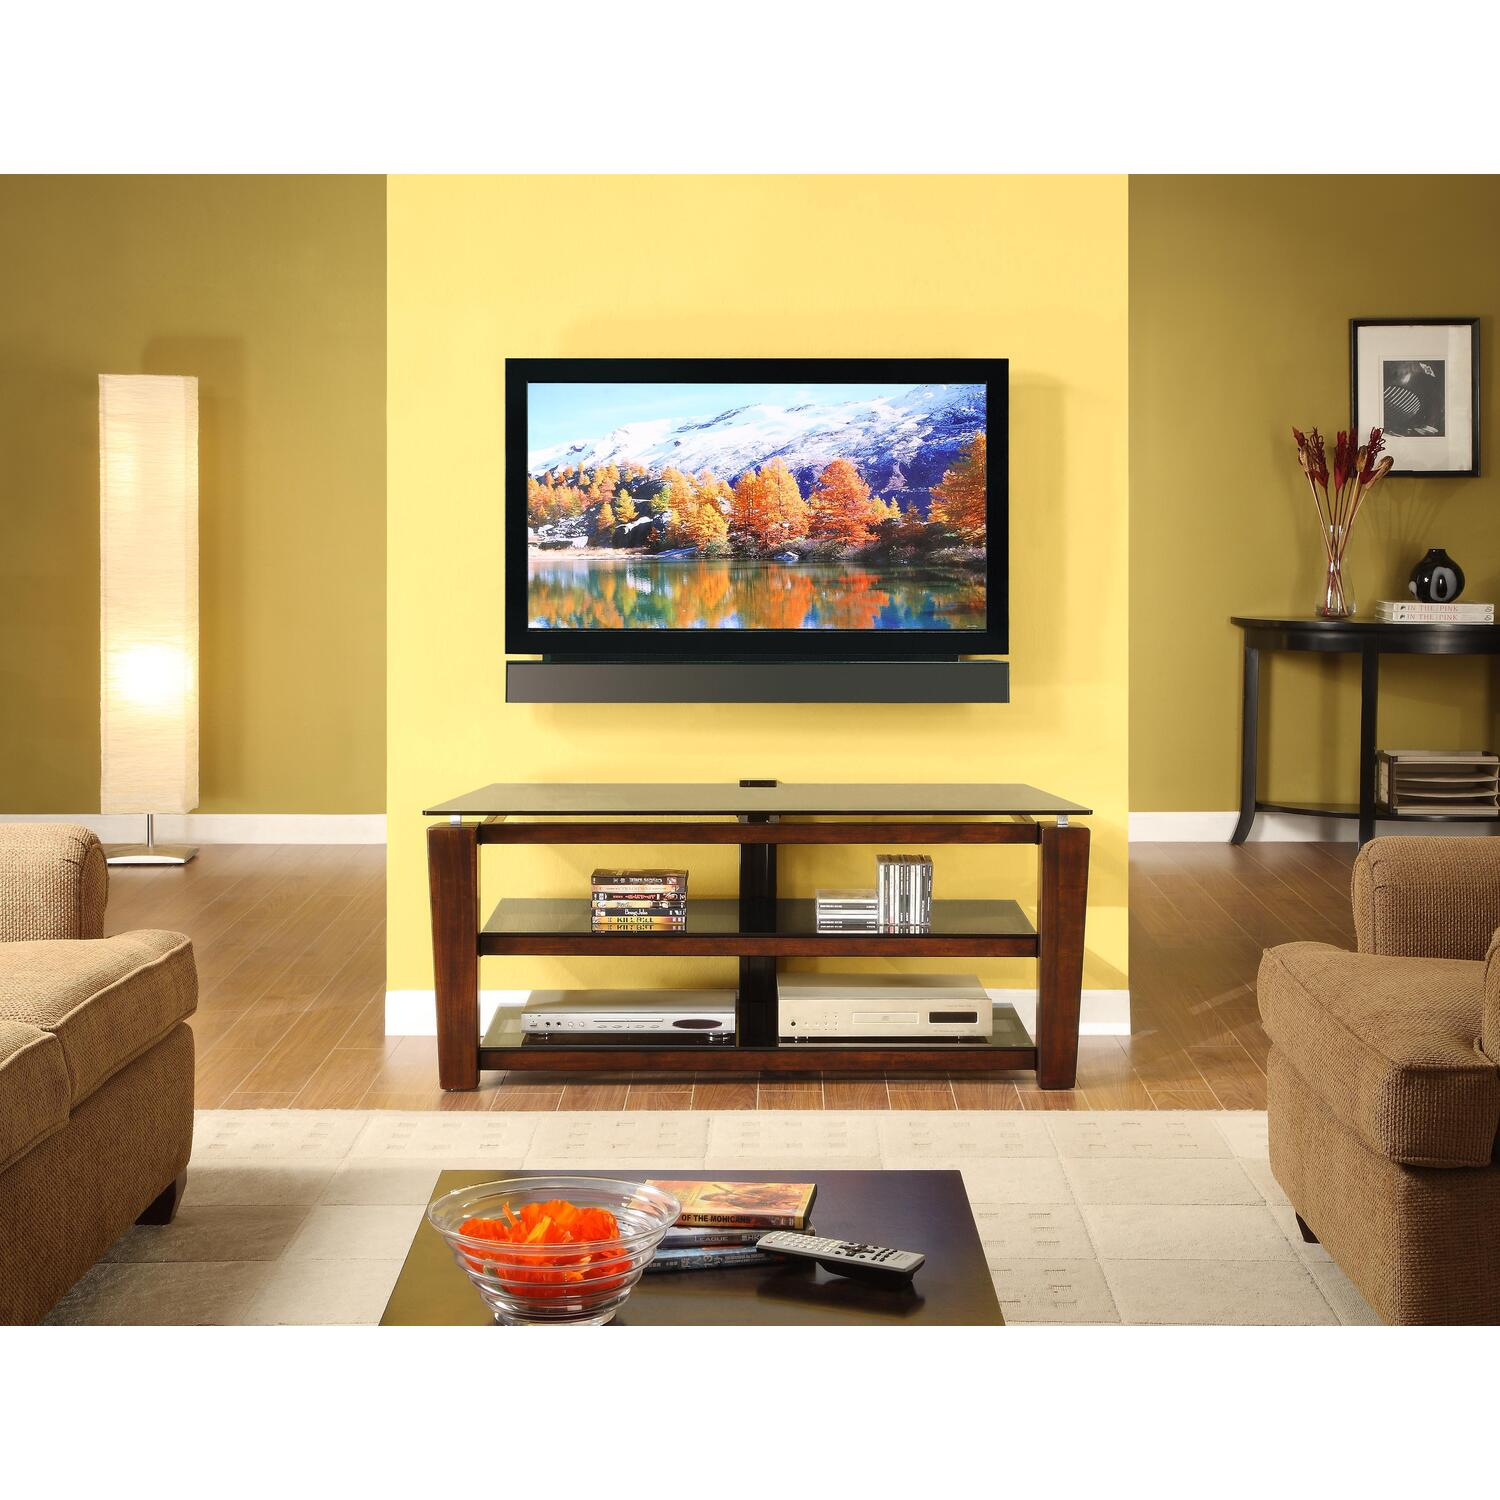 52 3 In 1 Flat Panel Tv Stand With Fixed Arms 395 99 Ojcommerce